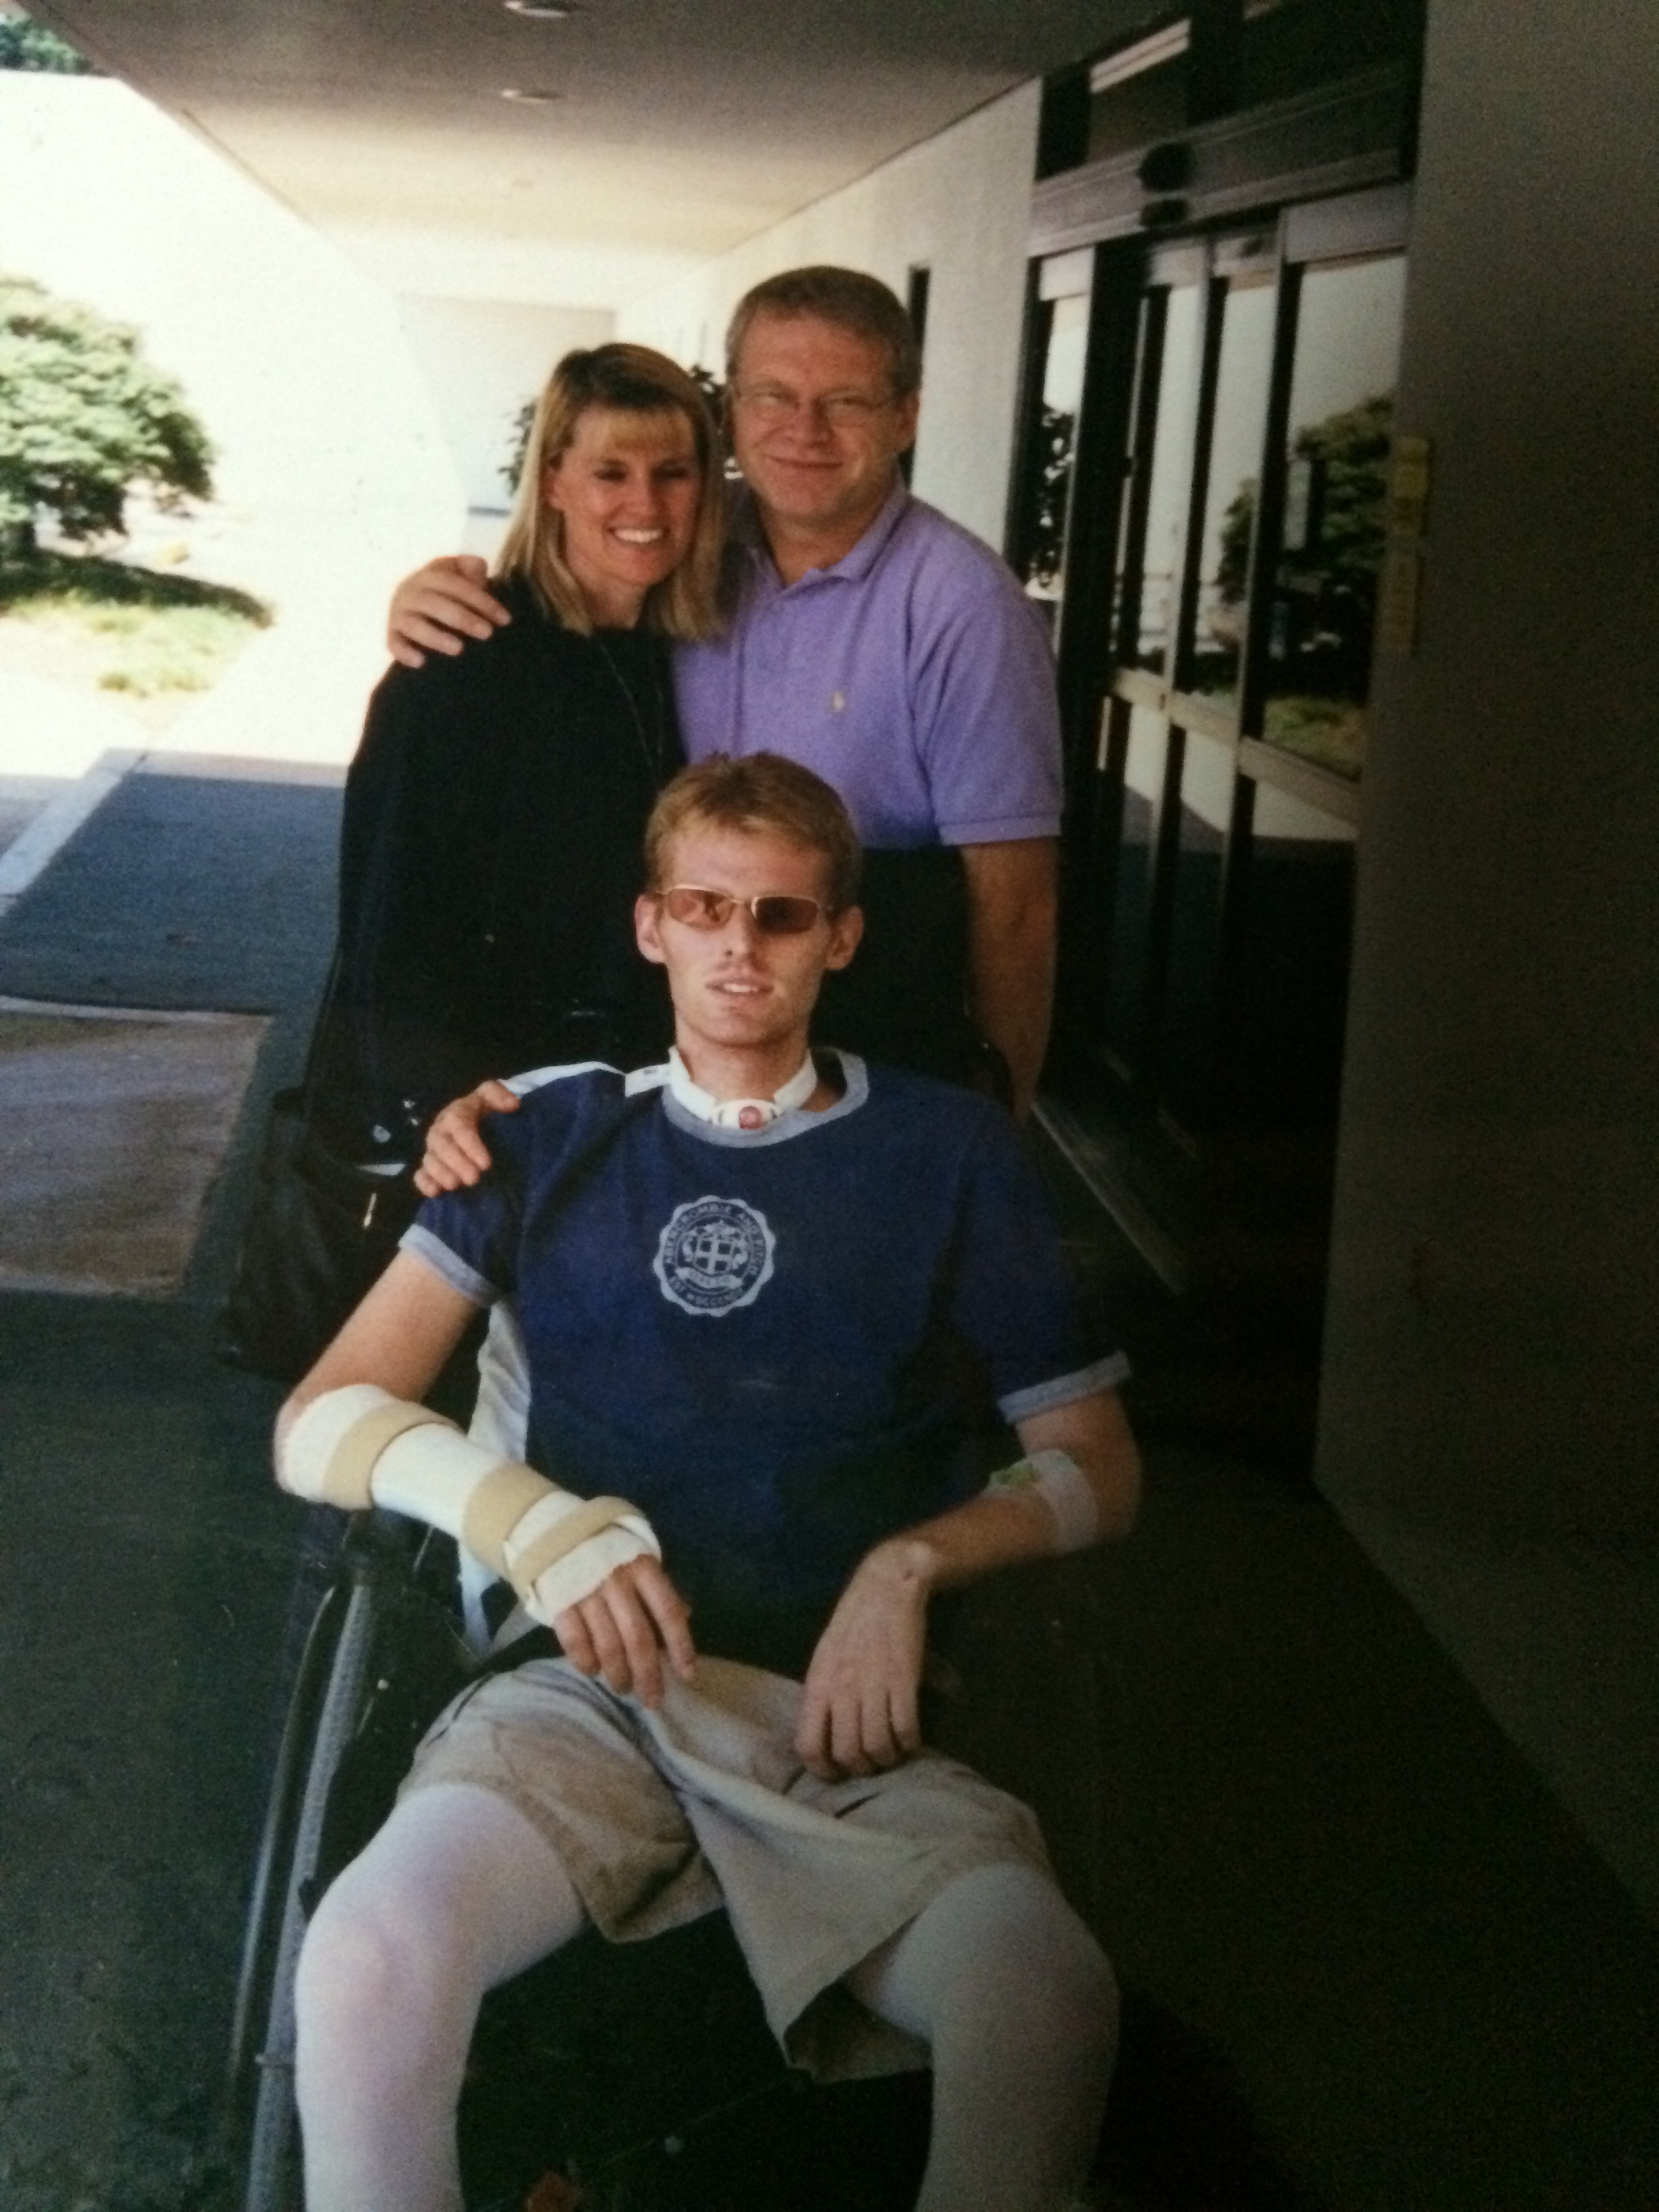 Paul, Carol and our precious Jay 5 weeks after the accident - we are smiling with joy because he is alive!